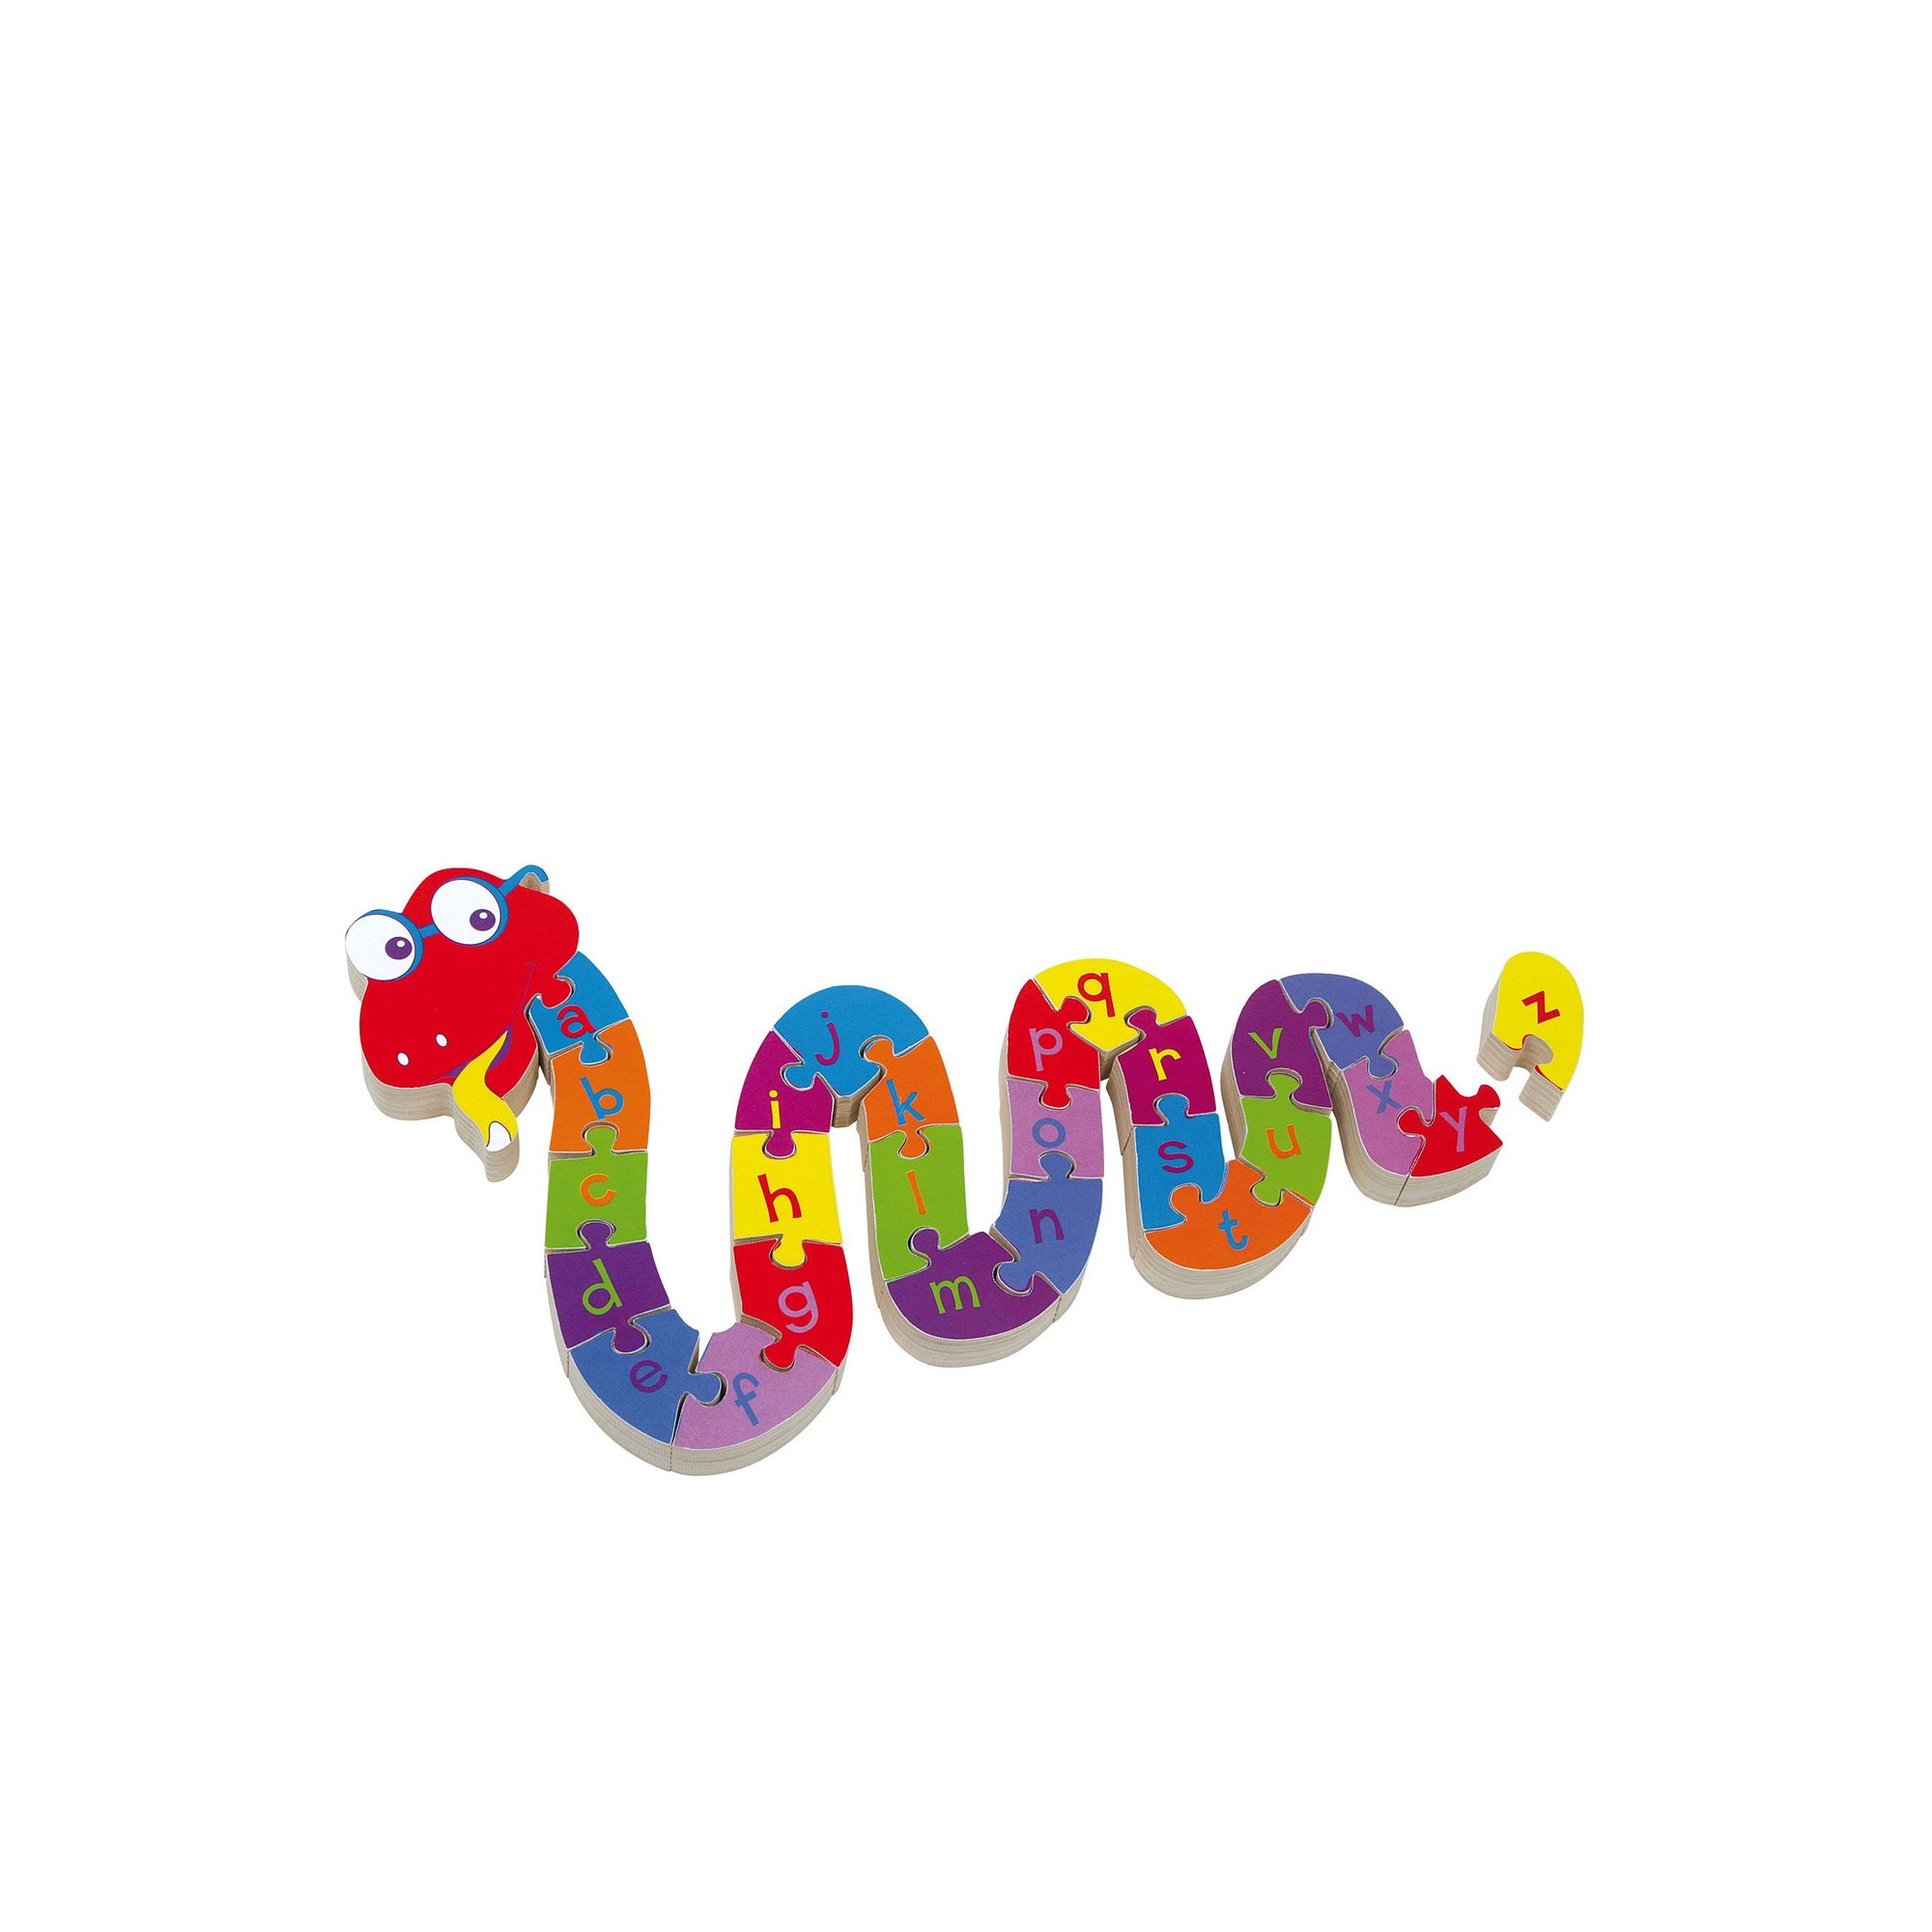 Image of LEGLER Small Foot ABC Snake Wooden Plug Puzzle